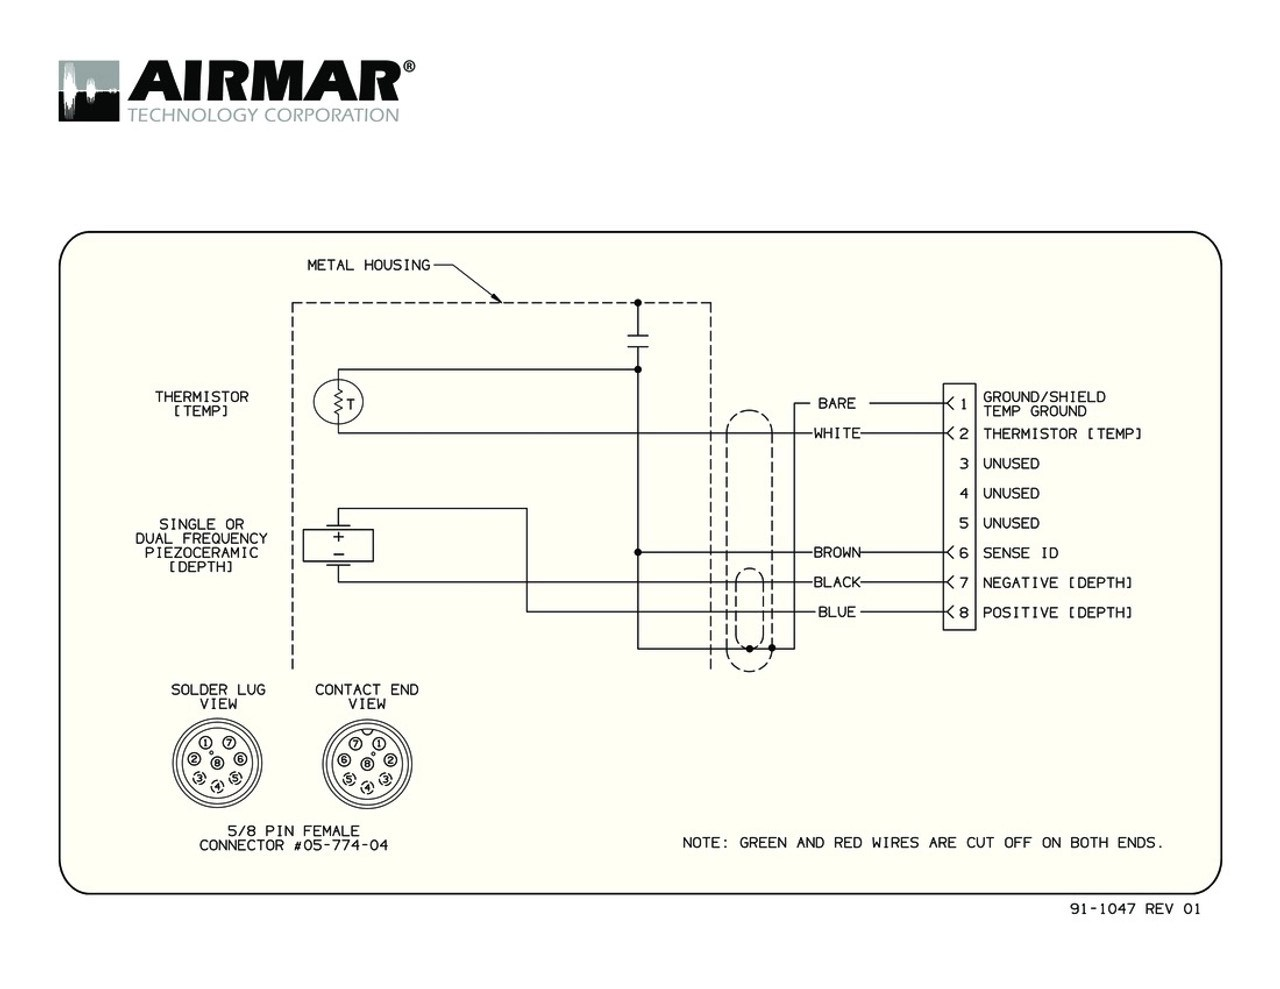 depth temperature b117 transducers with garmin 8 pin connector airmar wiring diagram  [ 1280 x 989 Pixel ]